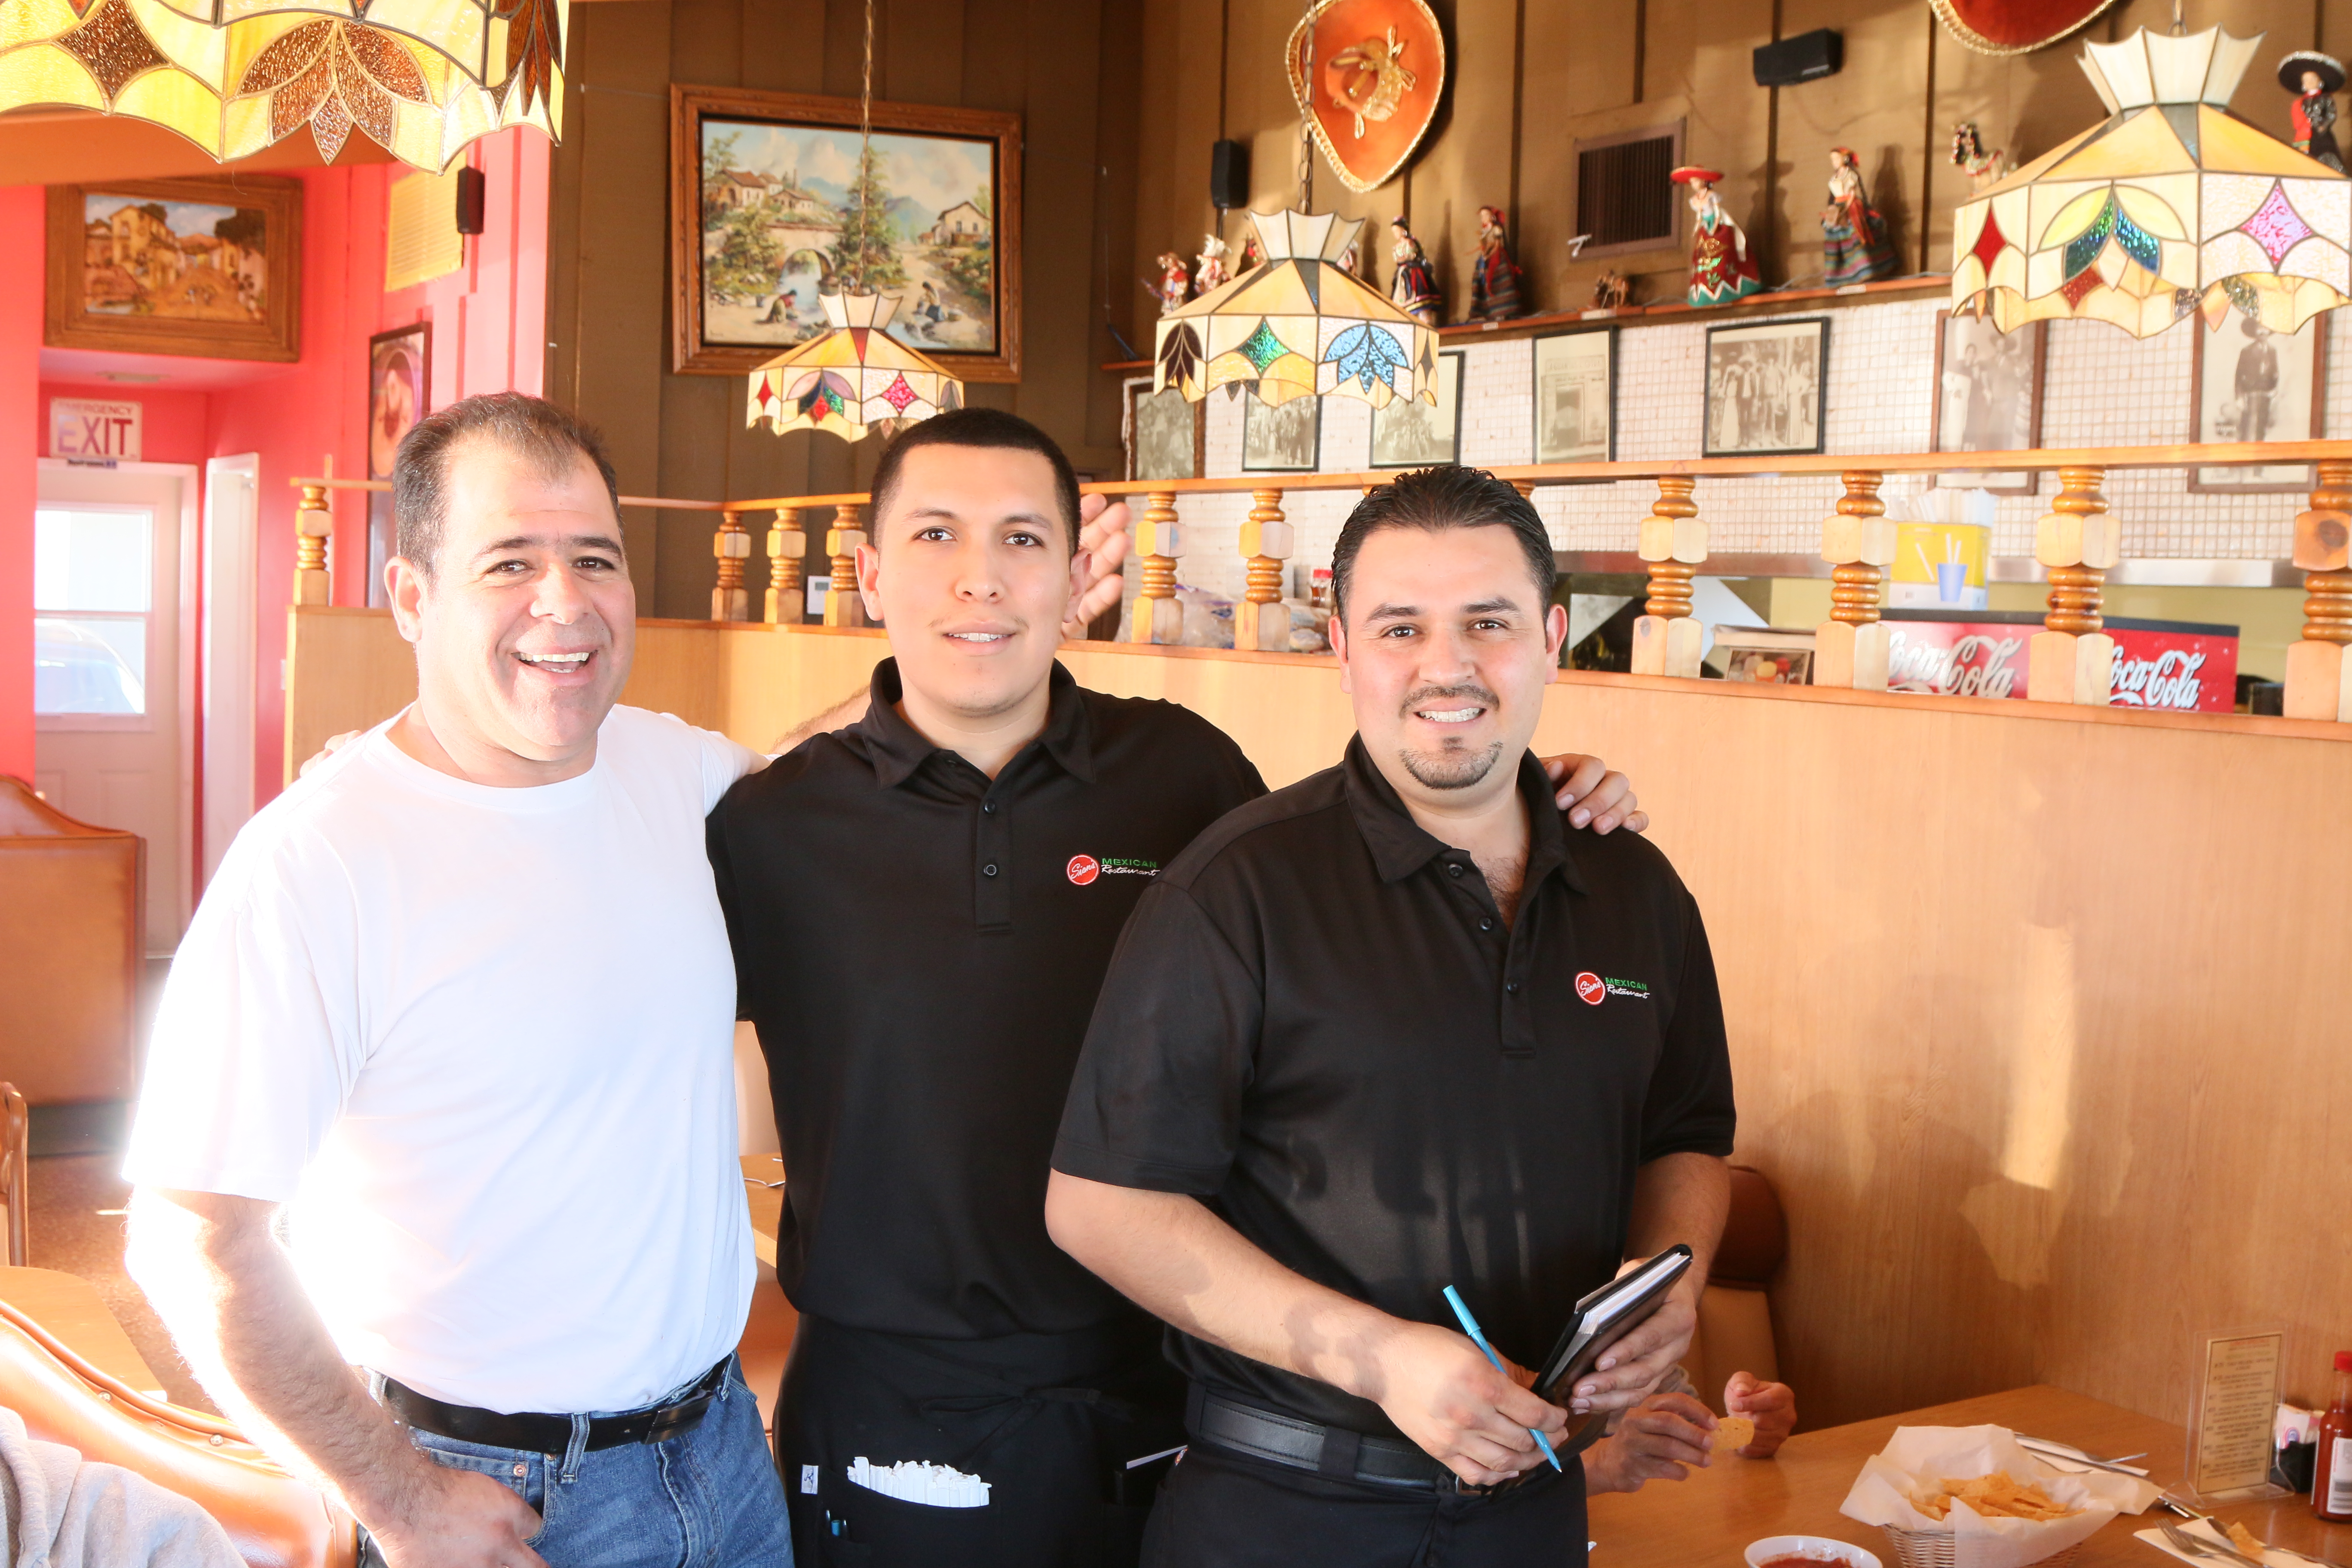 Sion S Owner Orozco With Servers Rogelio Barrera And Salvador Lamas Photo By Kevin Cody